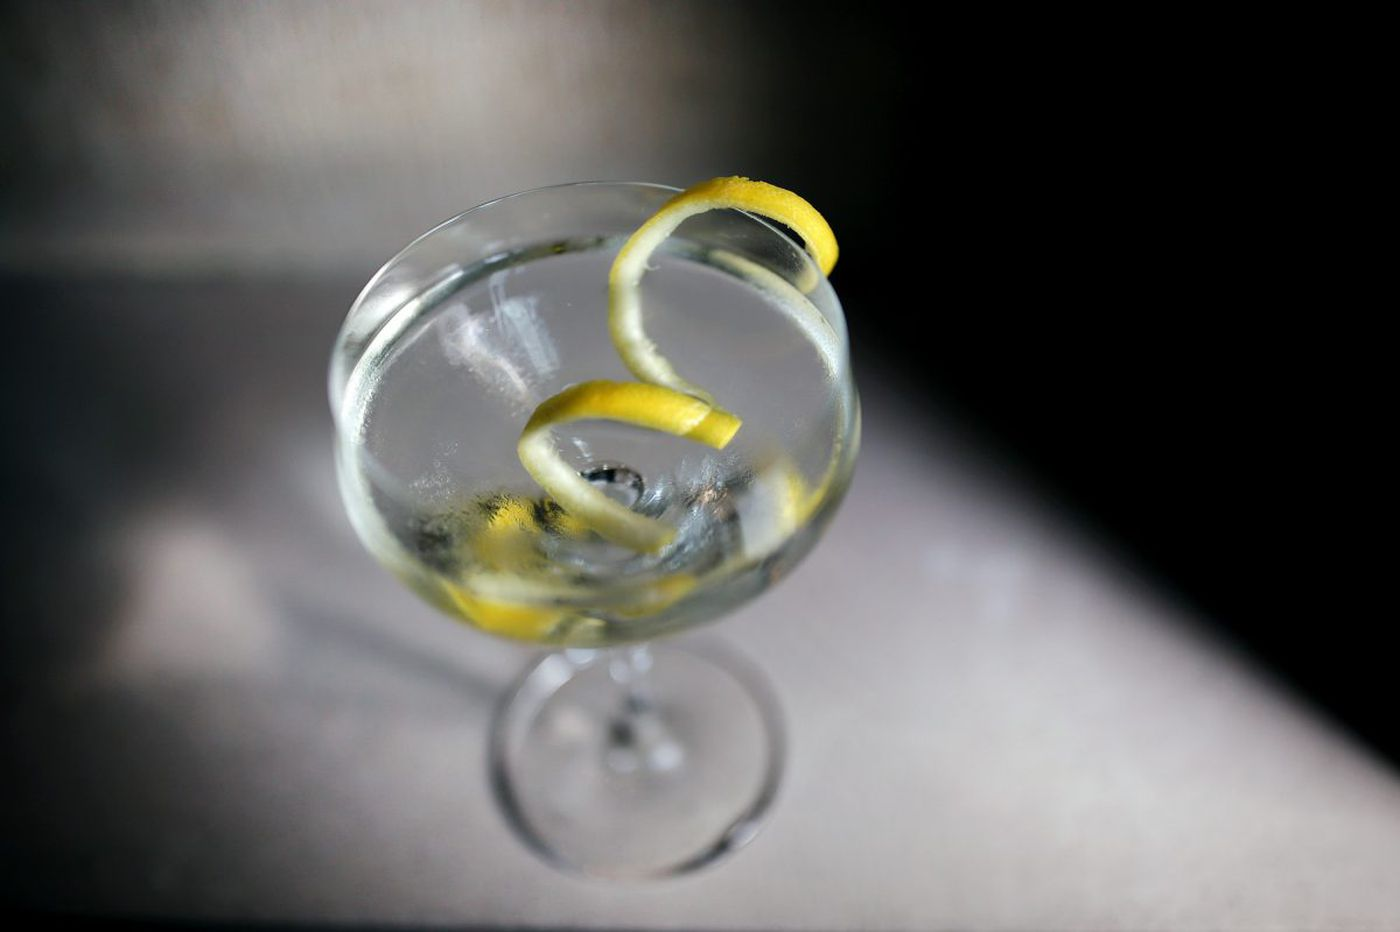 Stirred, not shaken, and other things bartenders want you to know about martinis